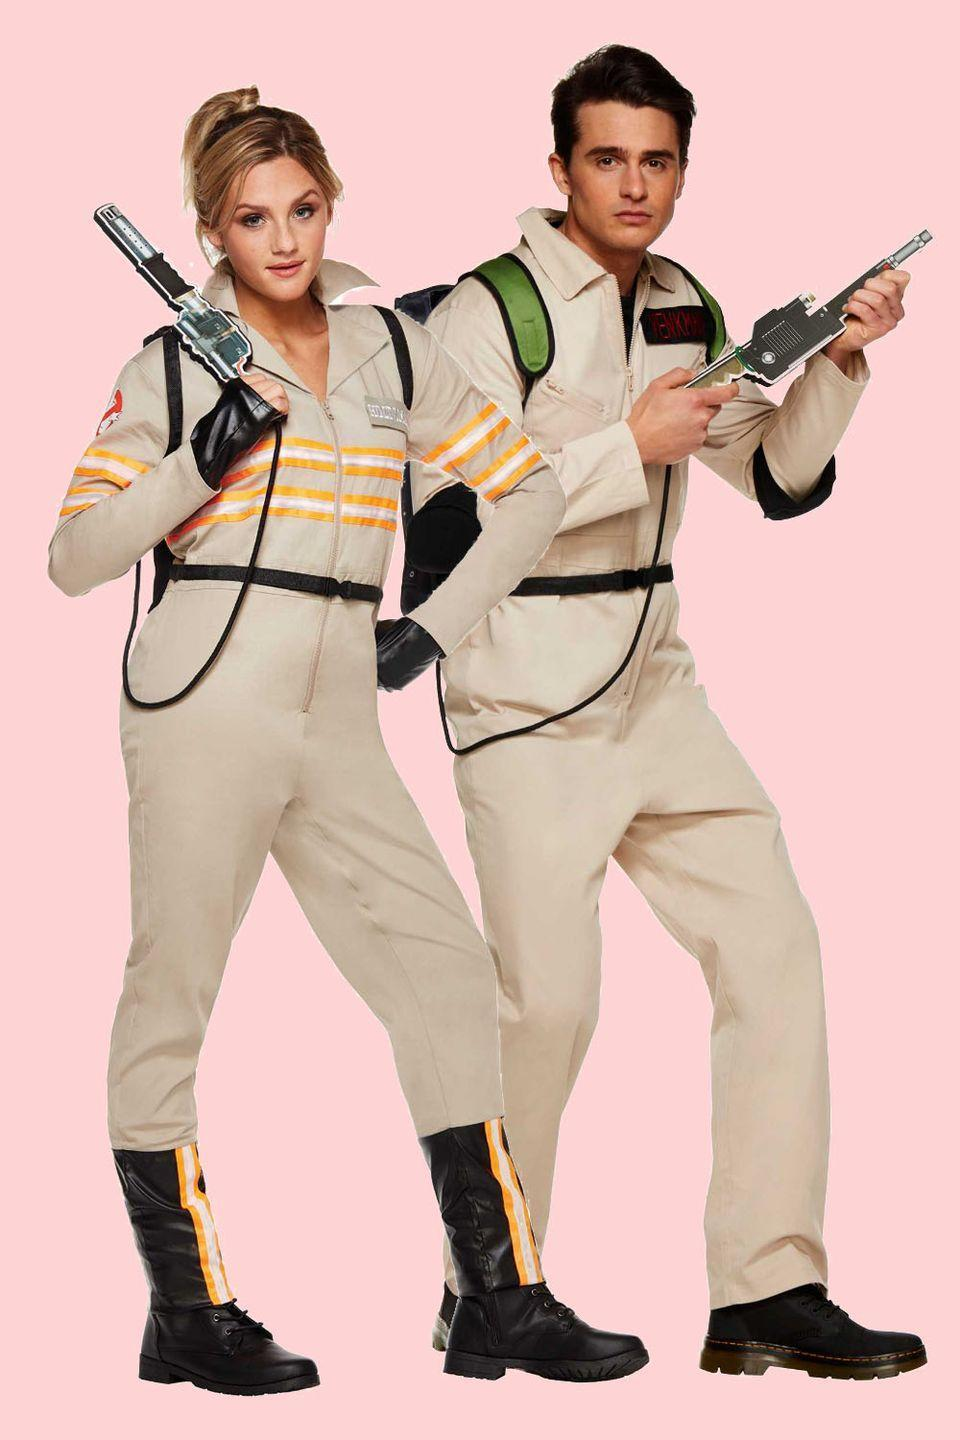 """<p>We apologize if the theme song is now permanently stuck in your head, but it's honestly one of the best parts of dressing up as these spirit-catching scientists.</p><p><a class=""""link rapid-noclick-resp"""" href=""""https://www.amazon.com/Rubies-Costume-Womens-Ghostbusters-Deluxe/dp/B01CQCBEA4/ref=sr_1_1?tag=syn-yahoo-20&ascsubtag=%5Bartid%7C10055.g.2625%5Bsrc%7Cyahoo-us"""" rel=""""nofollow noopener"""" target=""""_blank"""" data-ylk=""""slk:SHOP FEMALE GHOSTBUSTER COSTUME"""">SHOP FEMALE GHOSTBUSTER COSTUME</a></p><p> <a class=""""link rapid-noclick-resp"""" href=""""https://www.amazon.com/Ghostbusters-Deluxe-Jumpsuit-Beige-Costume/dp/B0039SX4NU/?tag=syn-yahoo-20&ascsubtag=%5Bartid%7C10055.g.2625%5Bsrc%7Cyahoo-us"""" rel=""""nofollow noopener"""" target=""""_blank"""" data-ylk=""""slk:SHOP MALE GHOSTBUSTER COSTUME"""">SHOP MALE GHOSTBUSTER COSTUME</a></p>"""